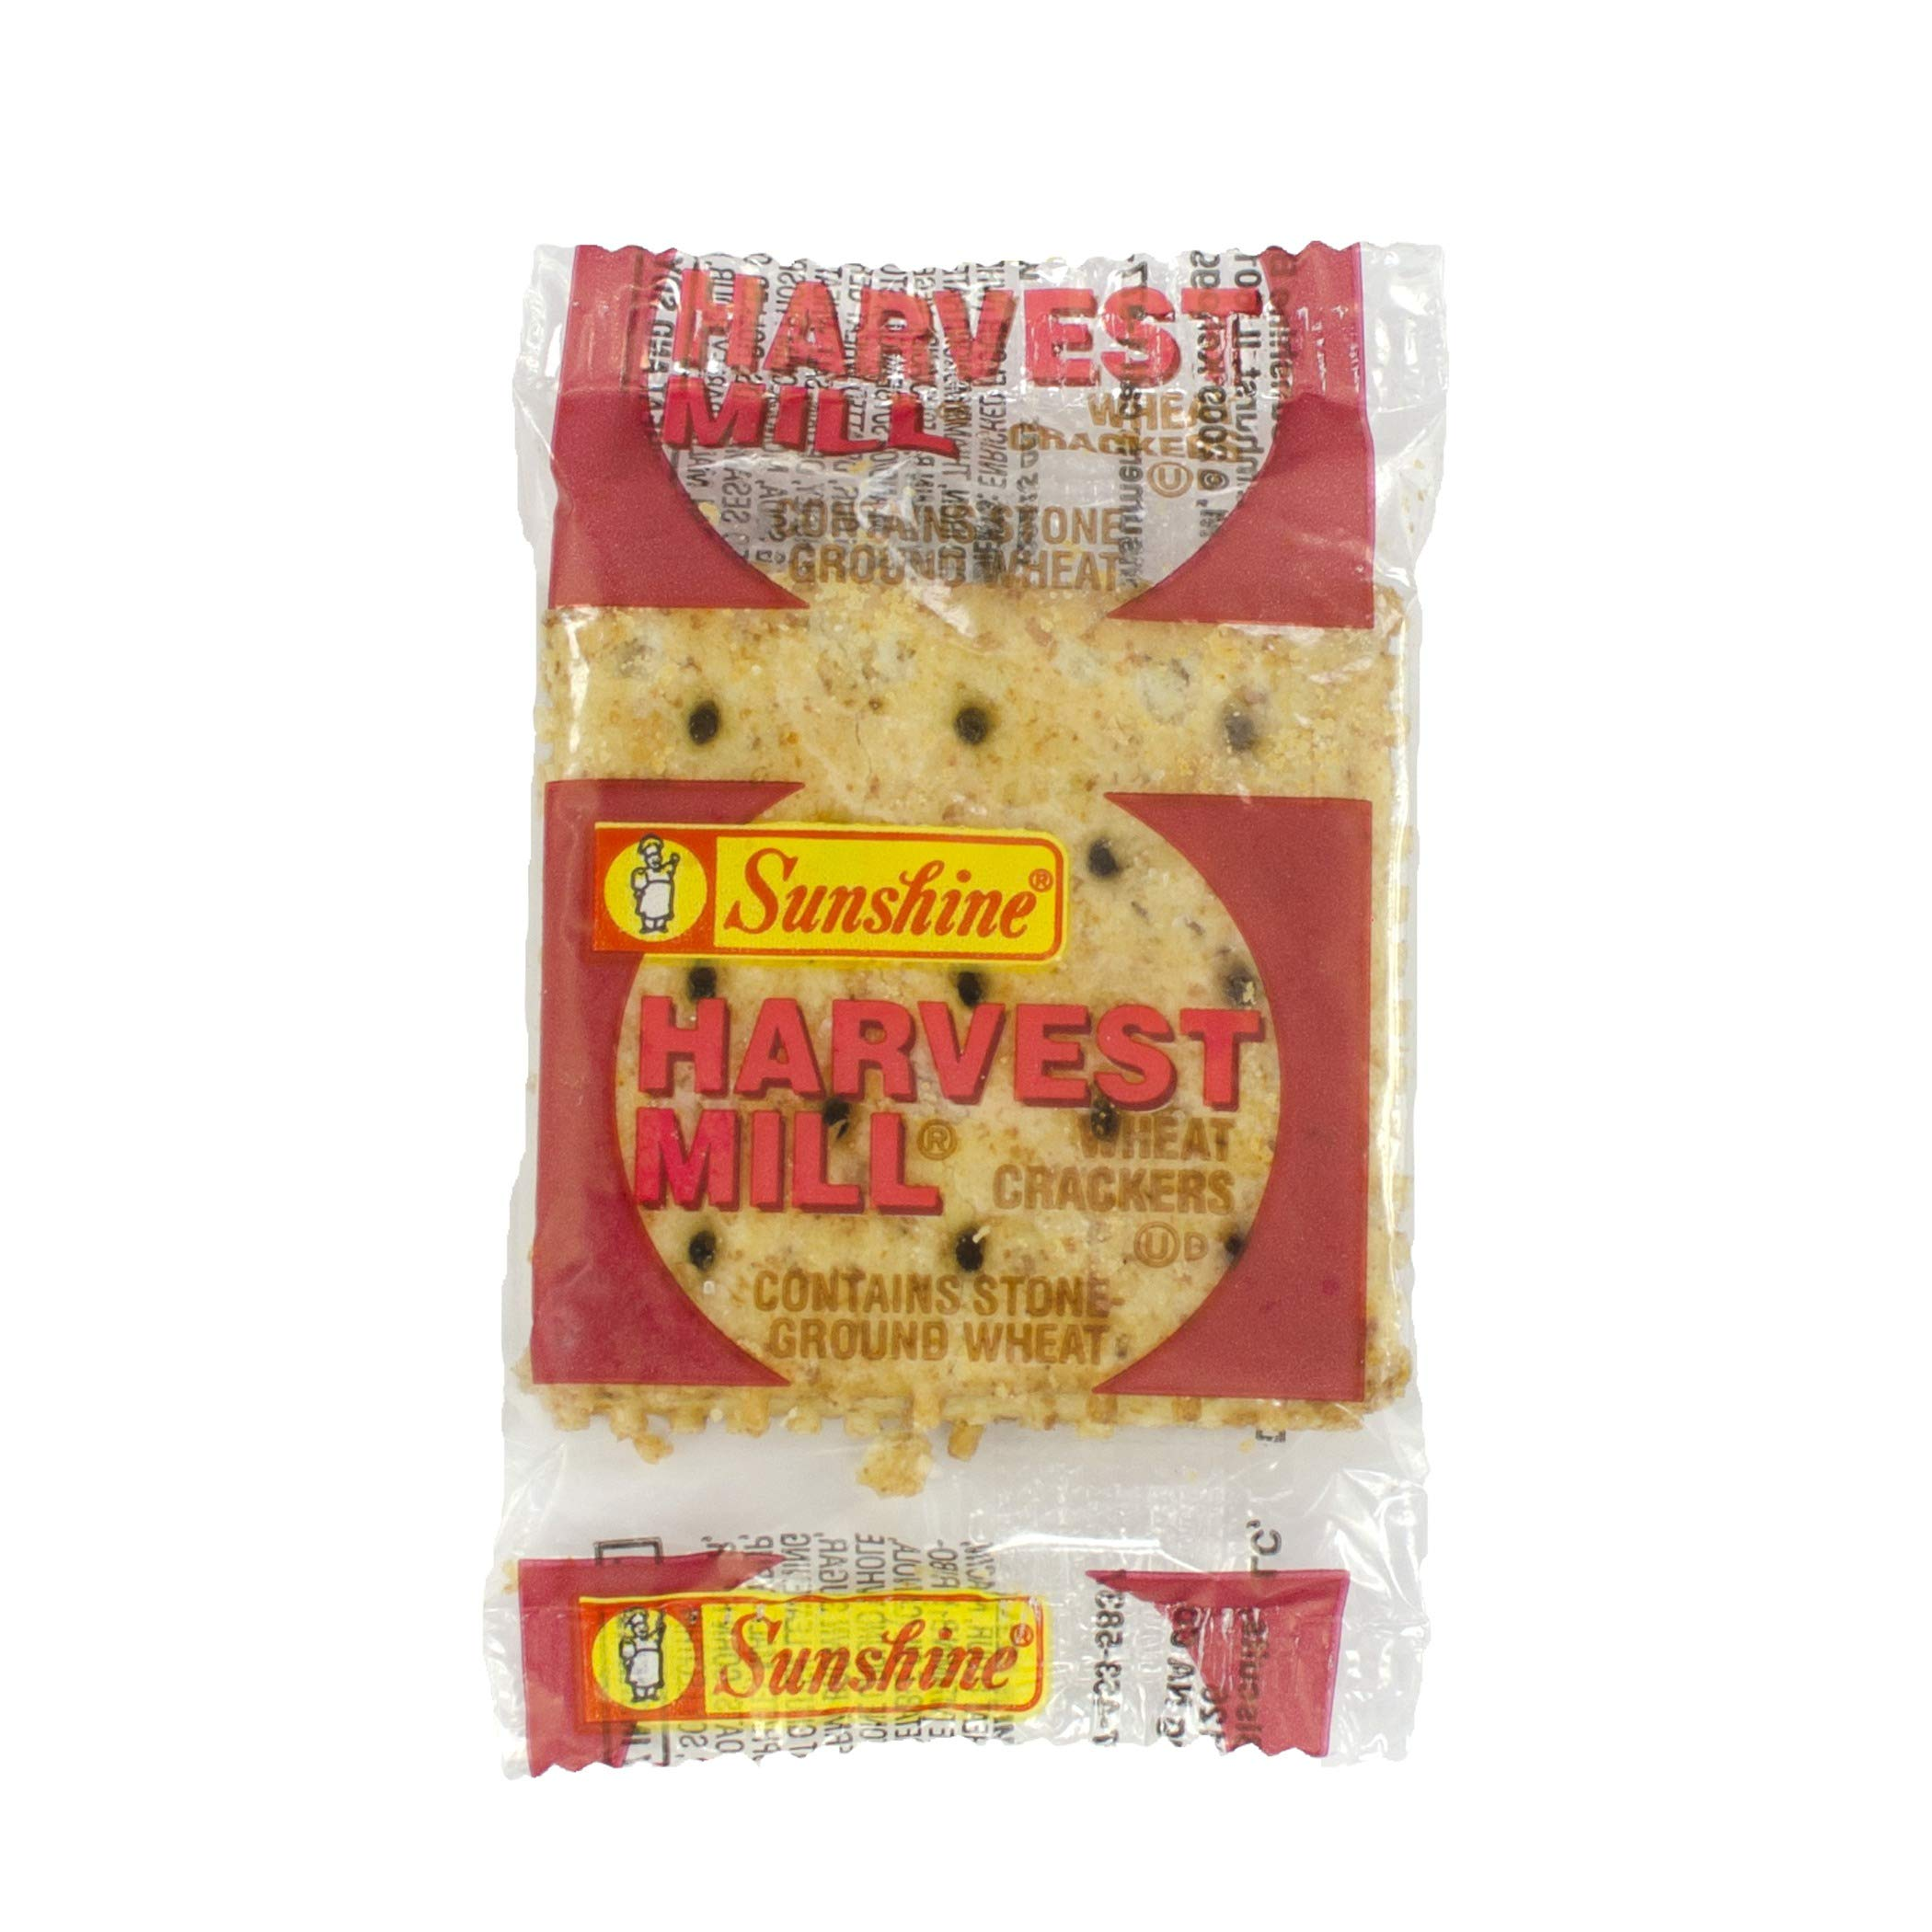 Kellogg's Sunshine Harvest Mill Wheat Crackers, 0.25 Ounce(Pack of 300) by Kellogg's